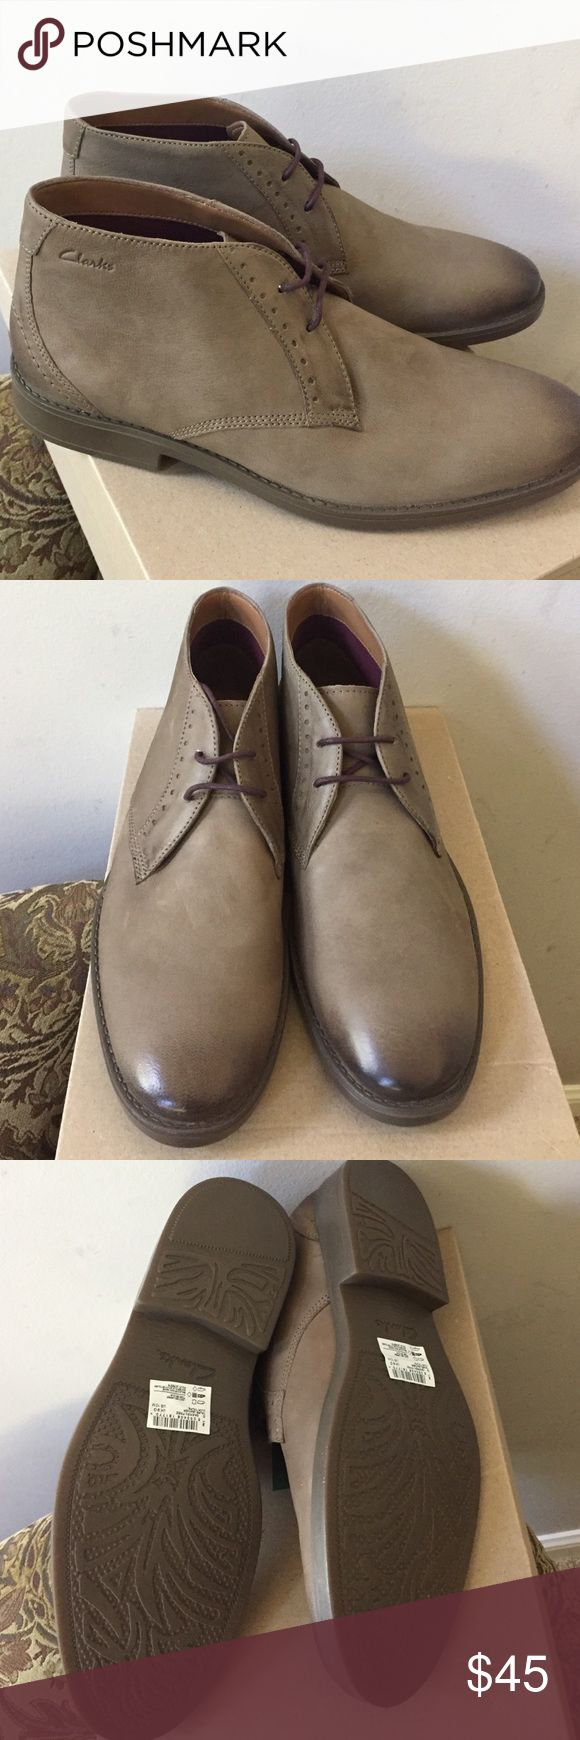 Men's Clarks ankle boots Men's Clarks ankle boots. Greige size 10. Husband doesn't like. NWT, box & never worn. Suede look but are a soft leather. Clarks Shoes Boots